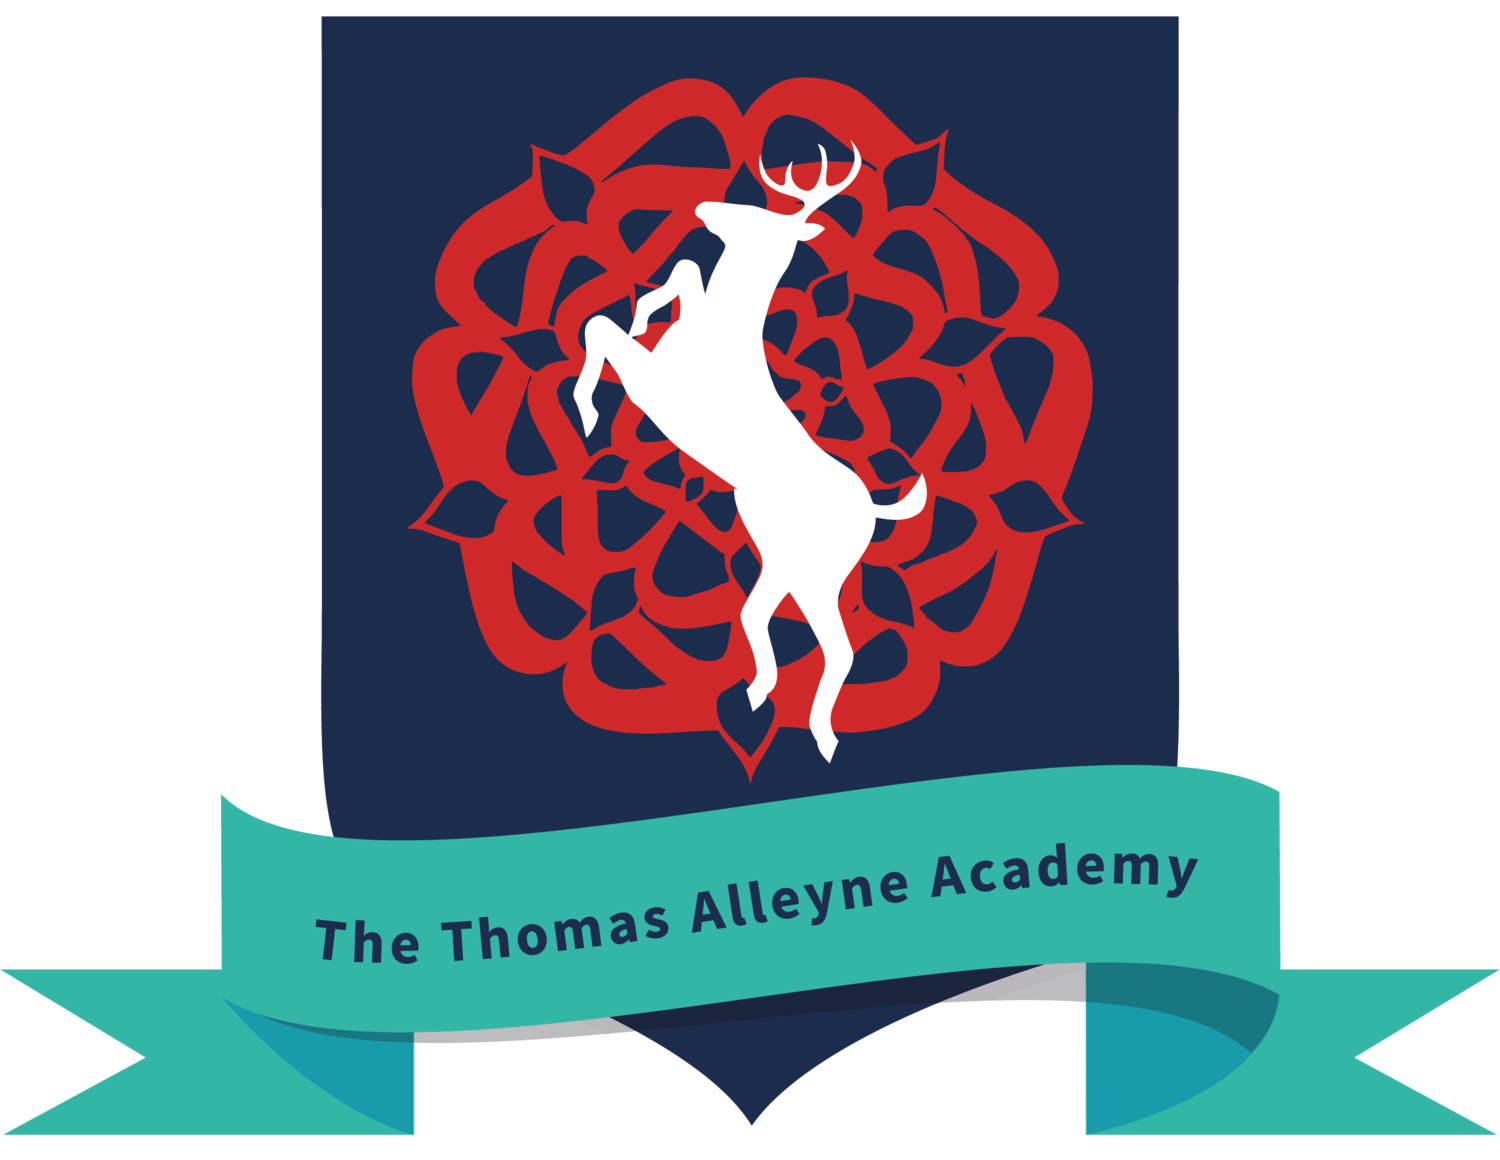 The Thomas Alleyne Academy